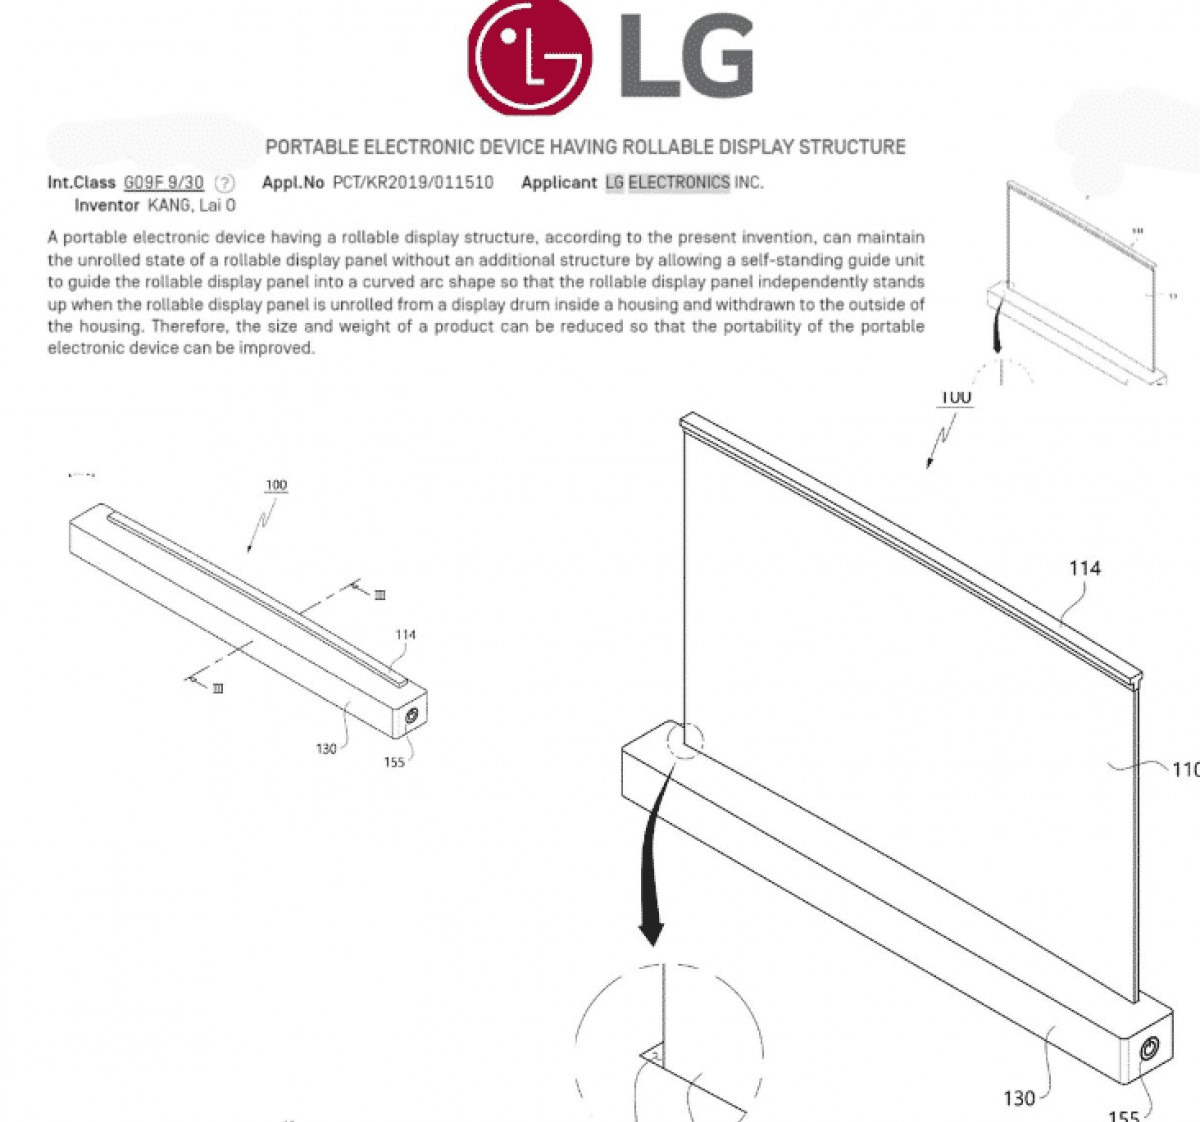 LG has patented a laptop with rollable screen